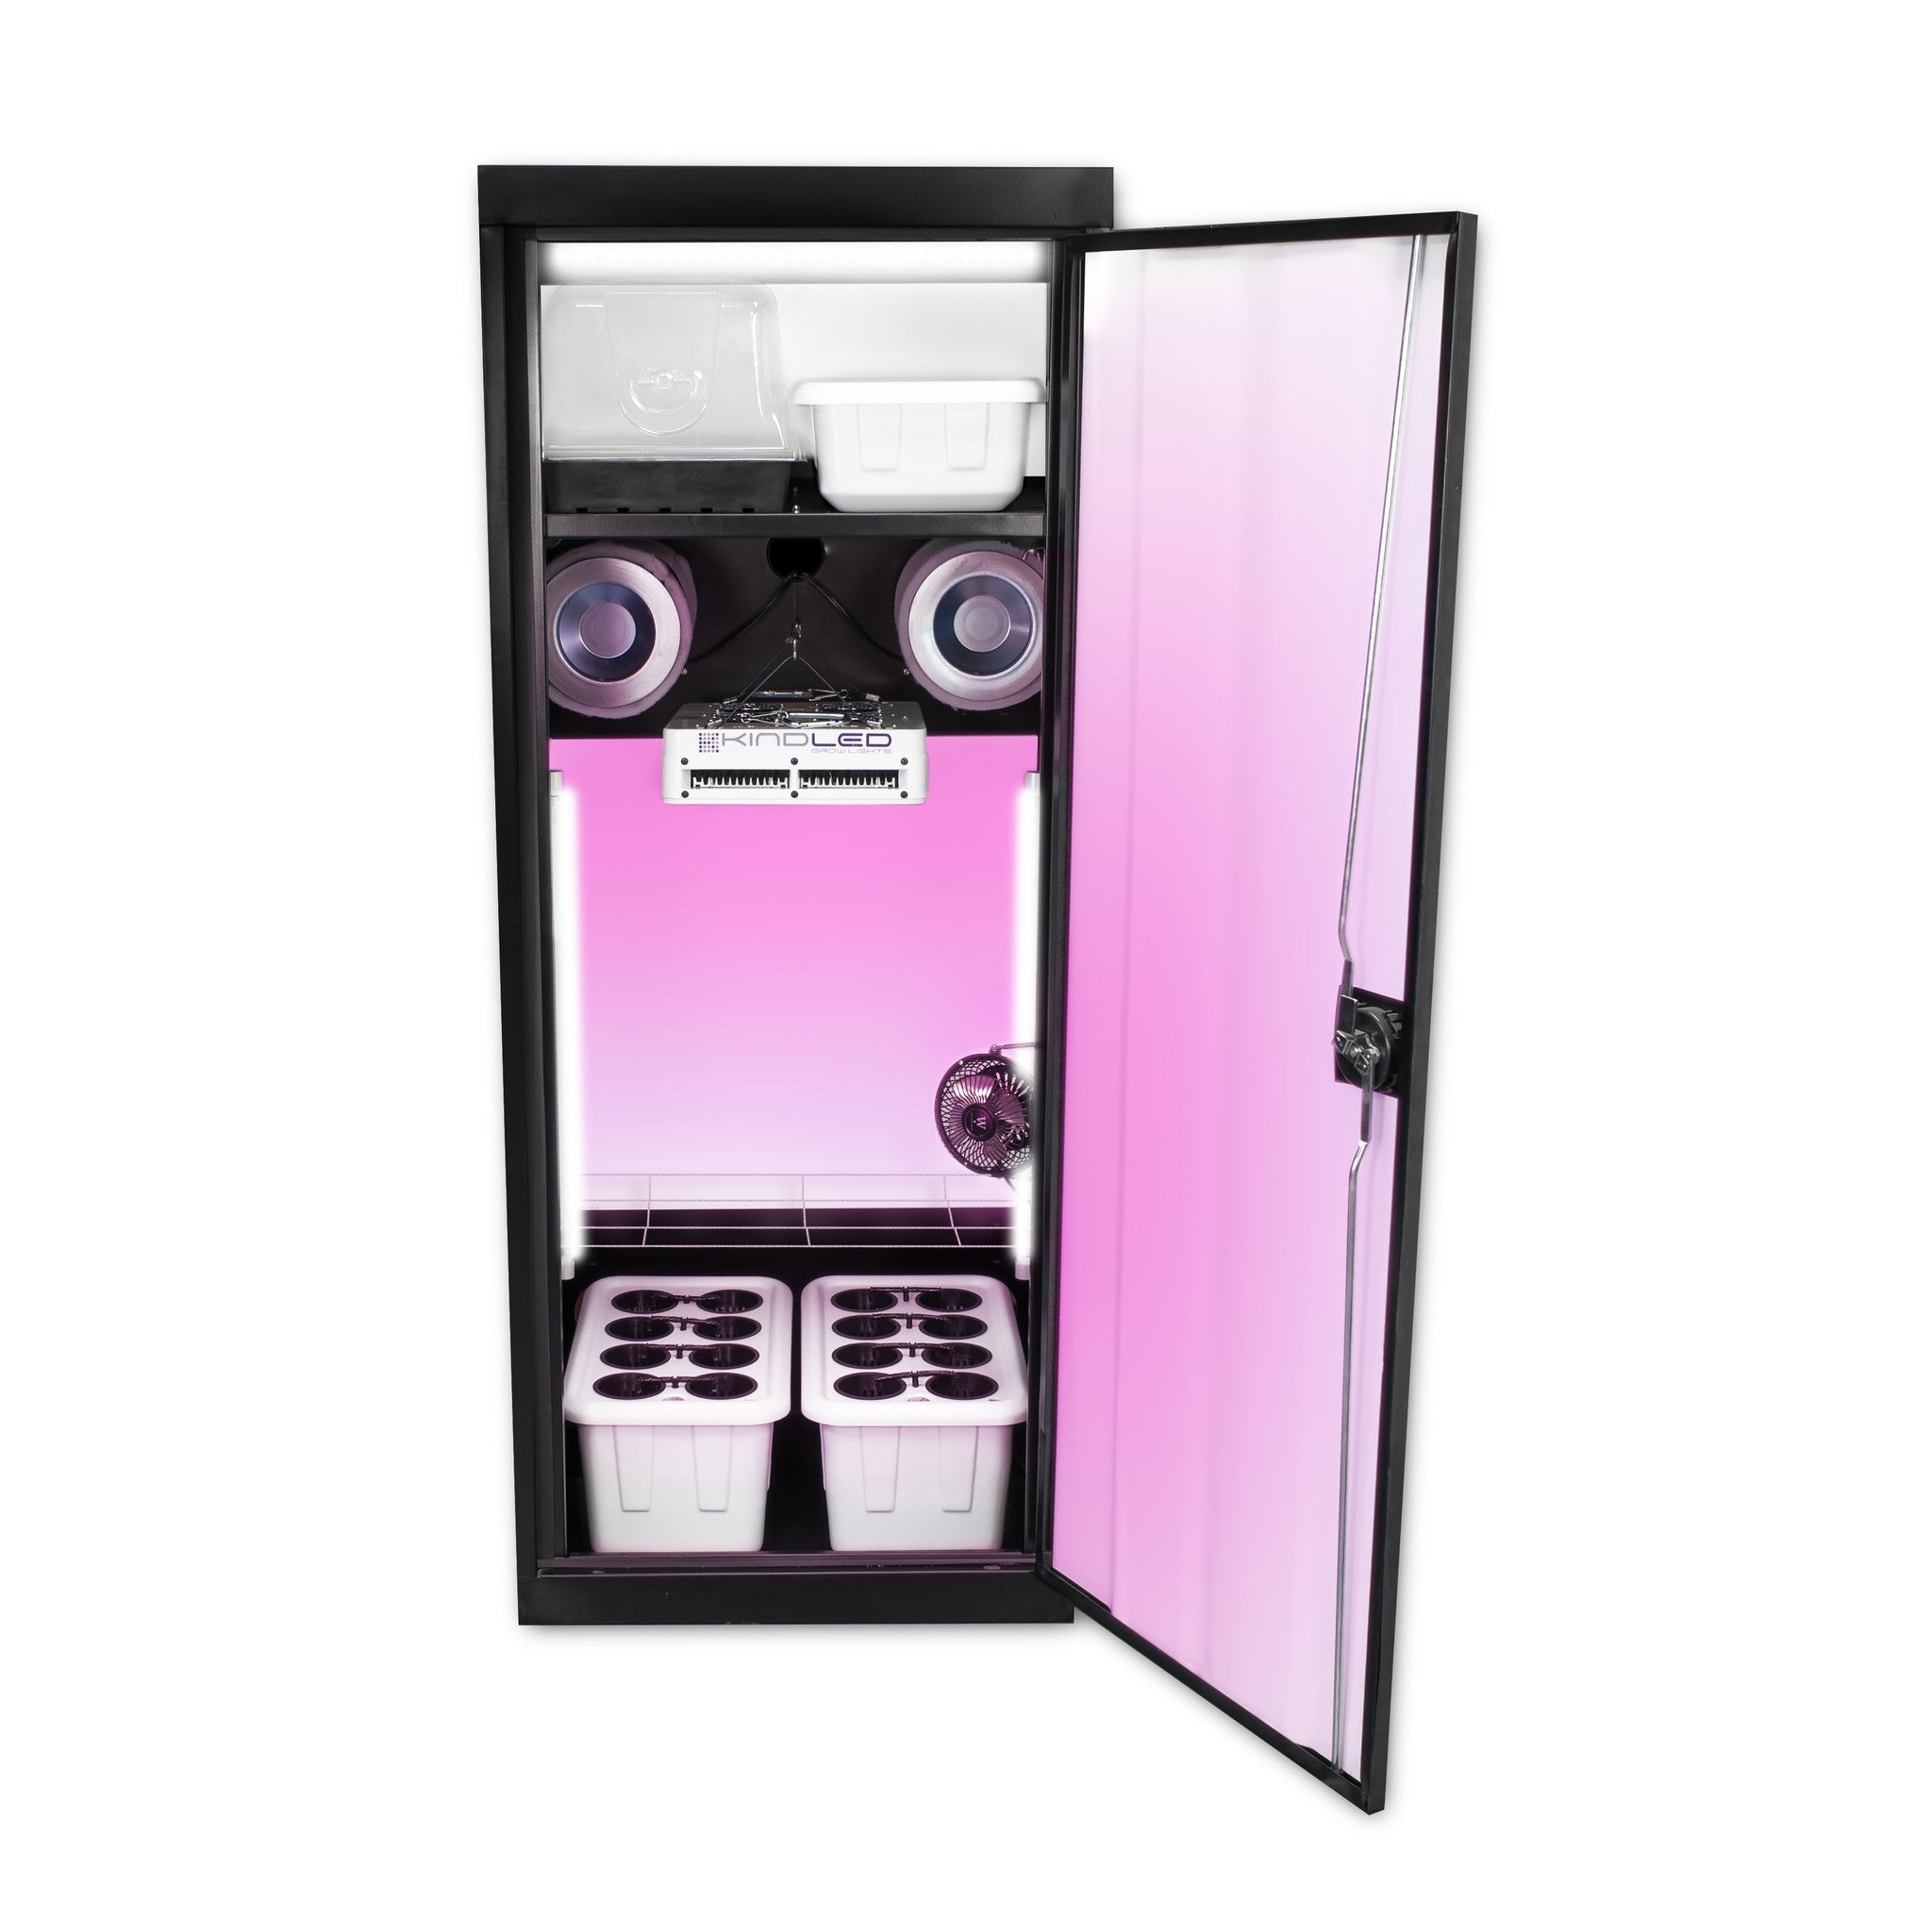 Buy Supercloset Led Superstar Stealth Grow Box Online